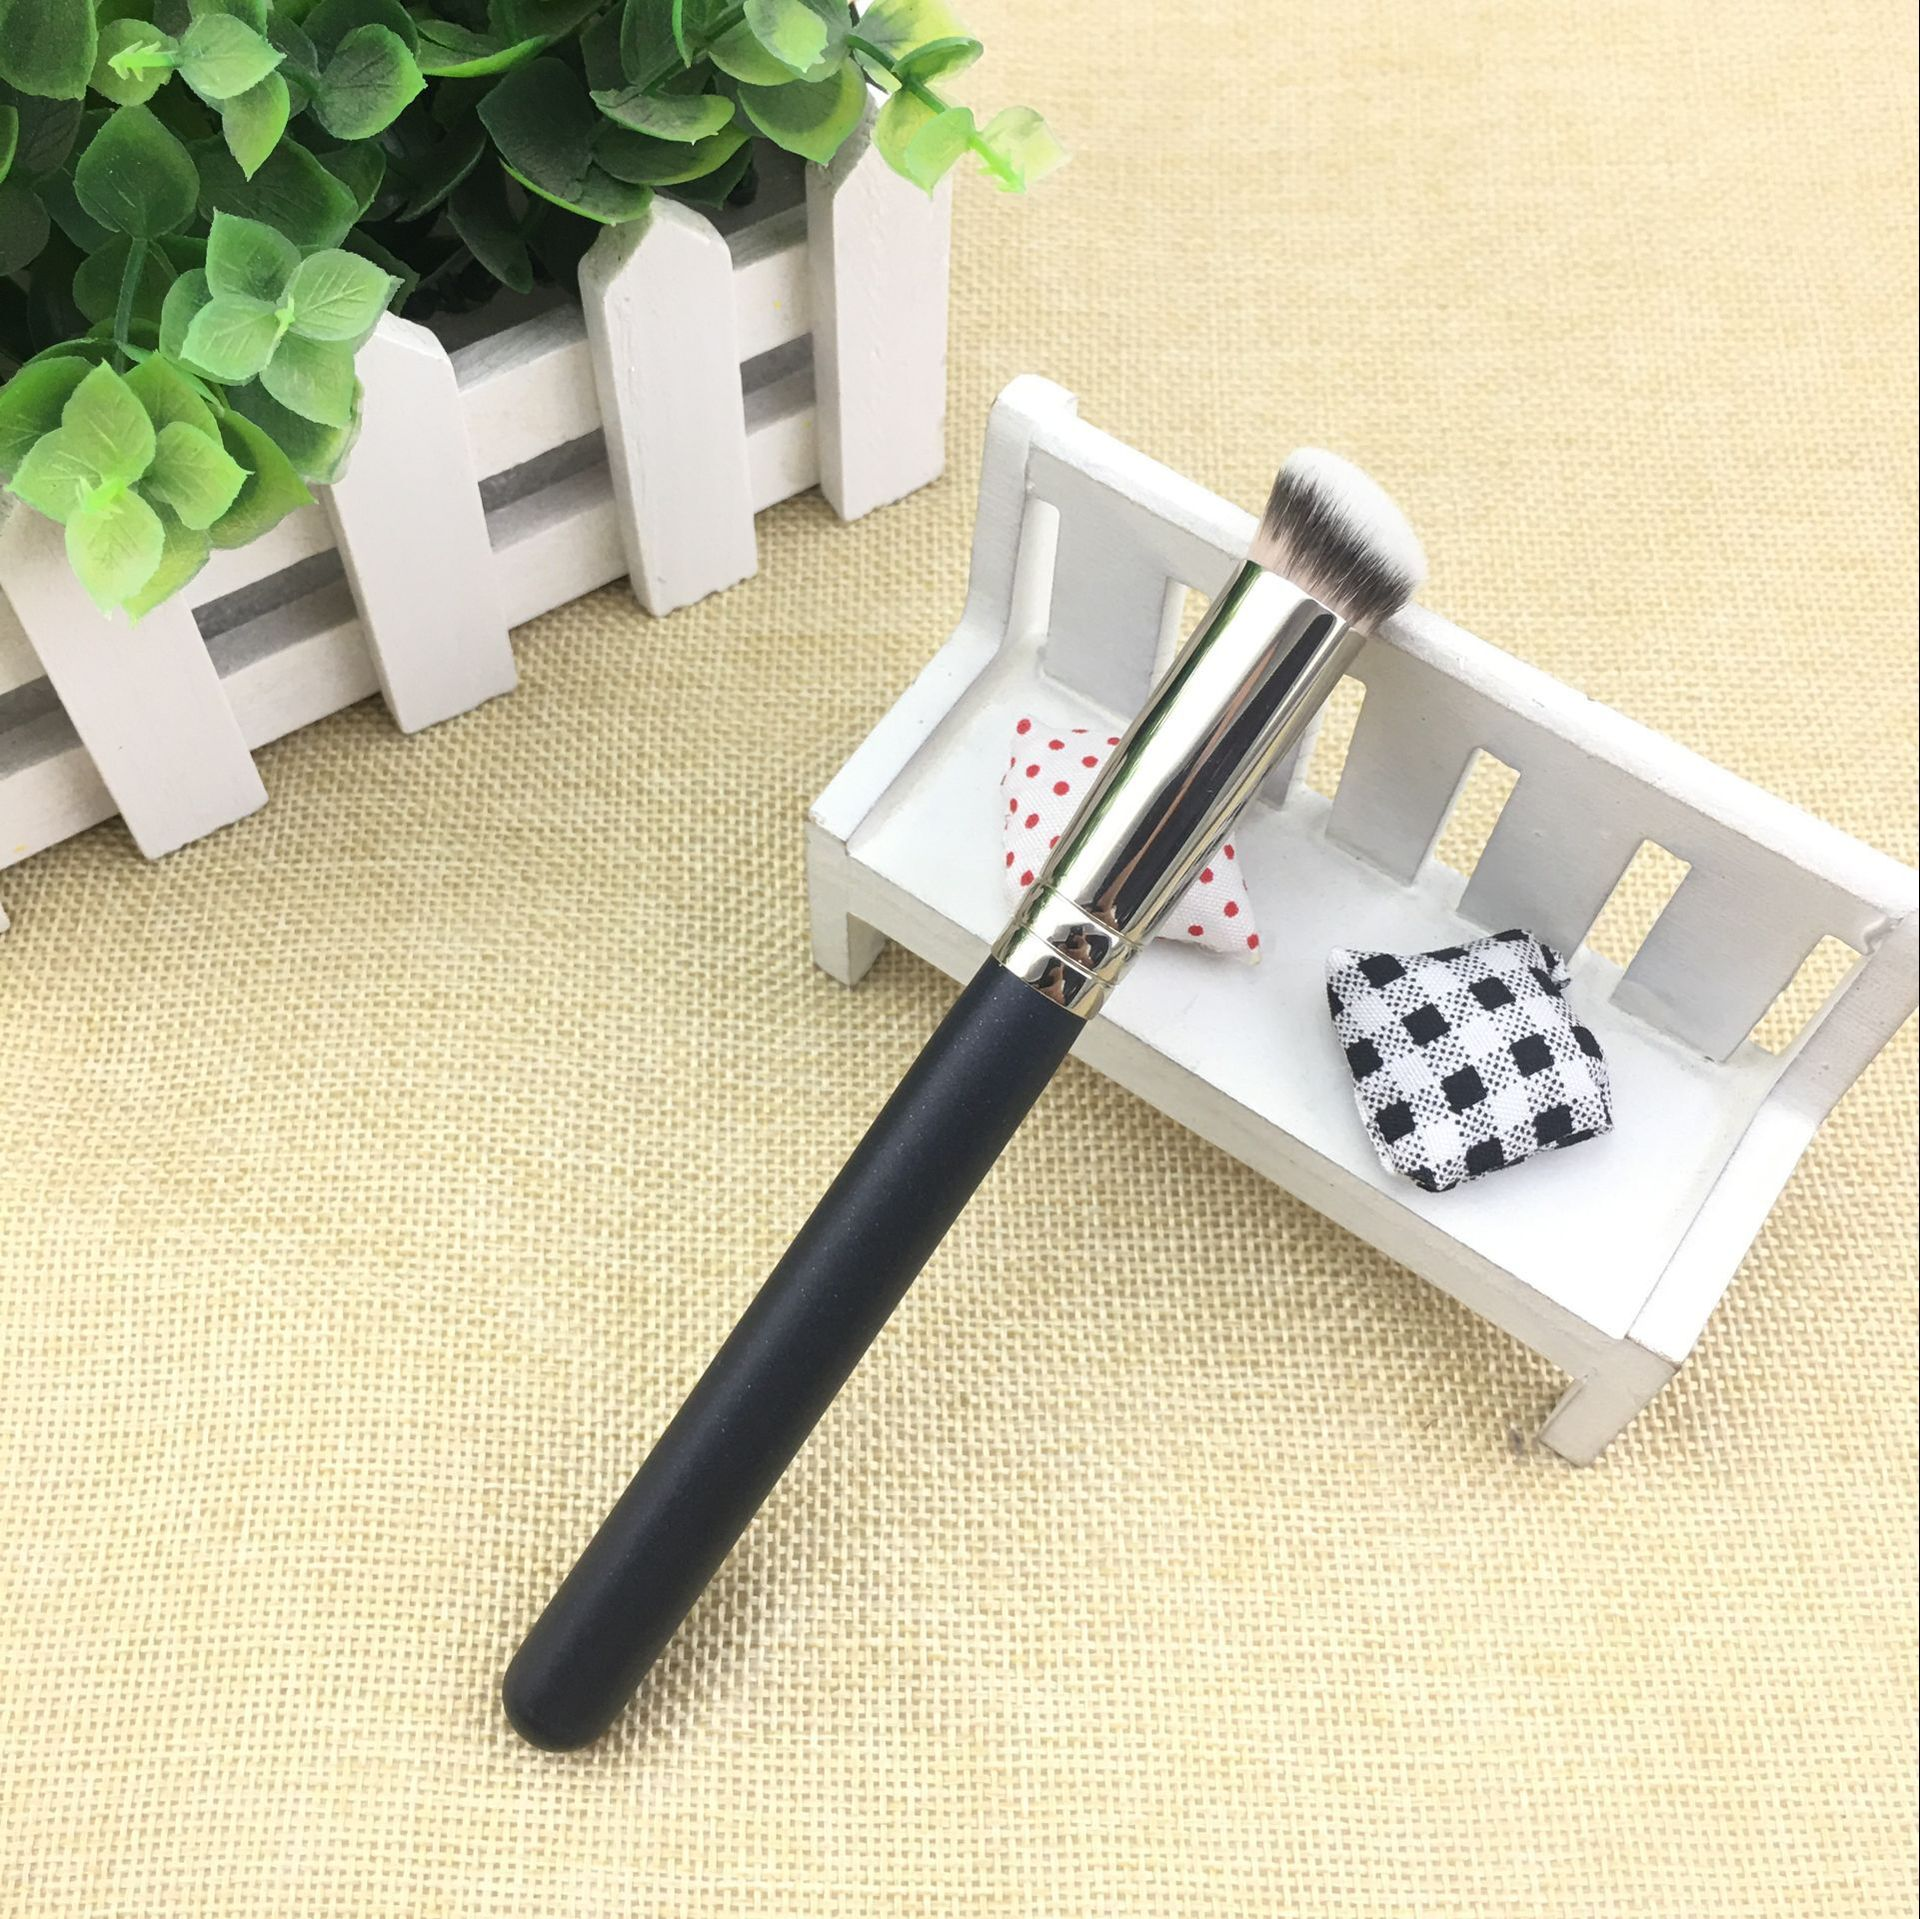 1 piece Angled Concealer Makeup brushes M270s Small partial Liquid Foundation Cream Make up brush Beauty Tools Cosmetics